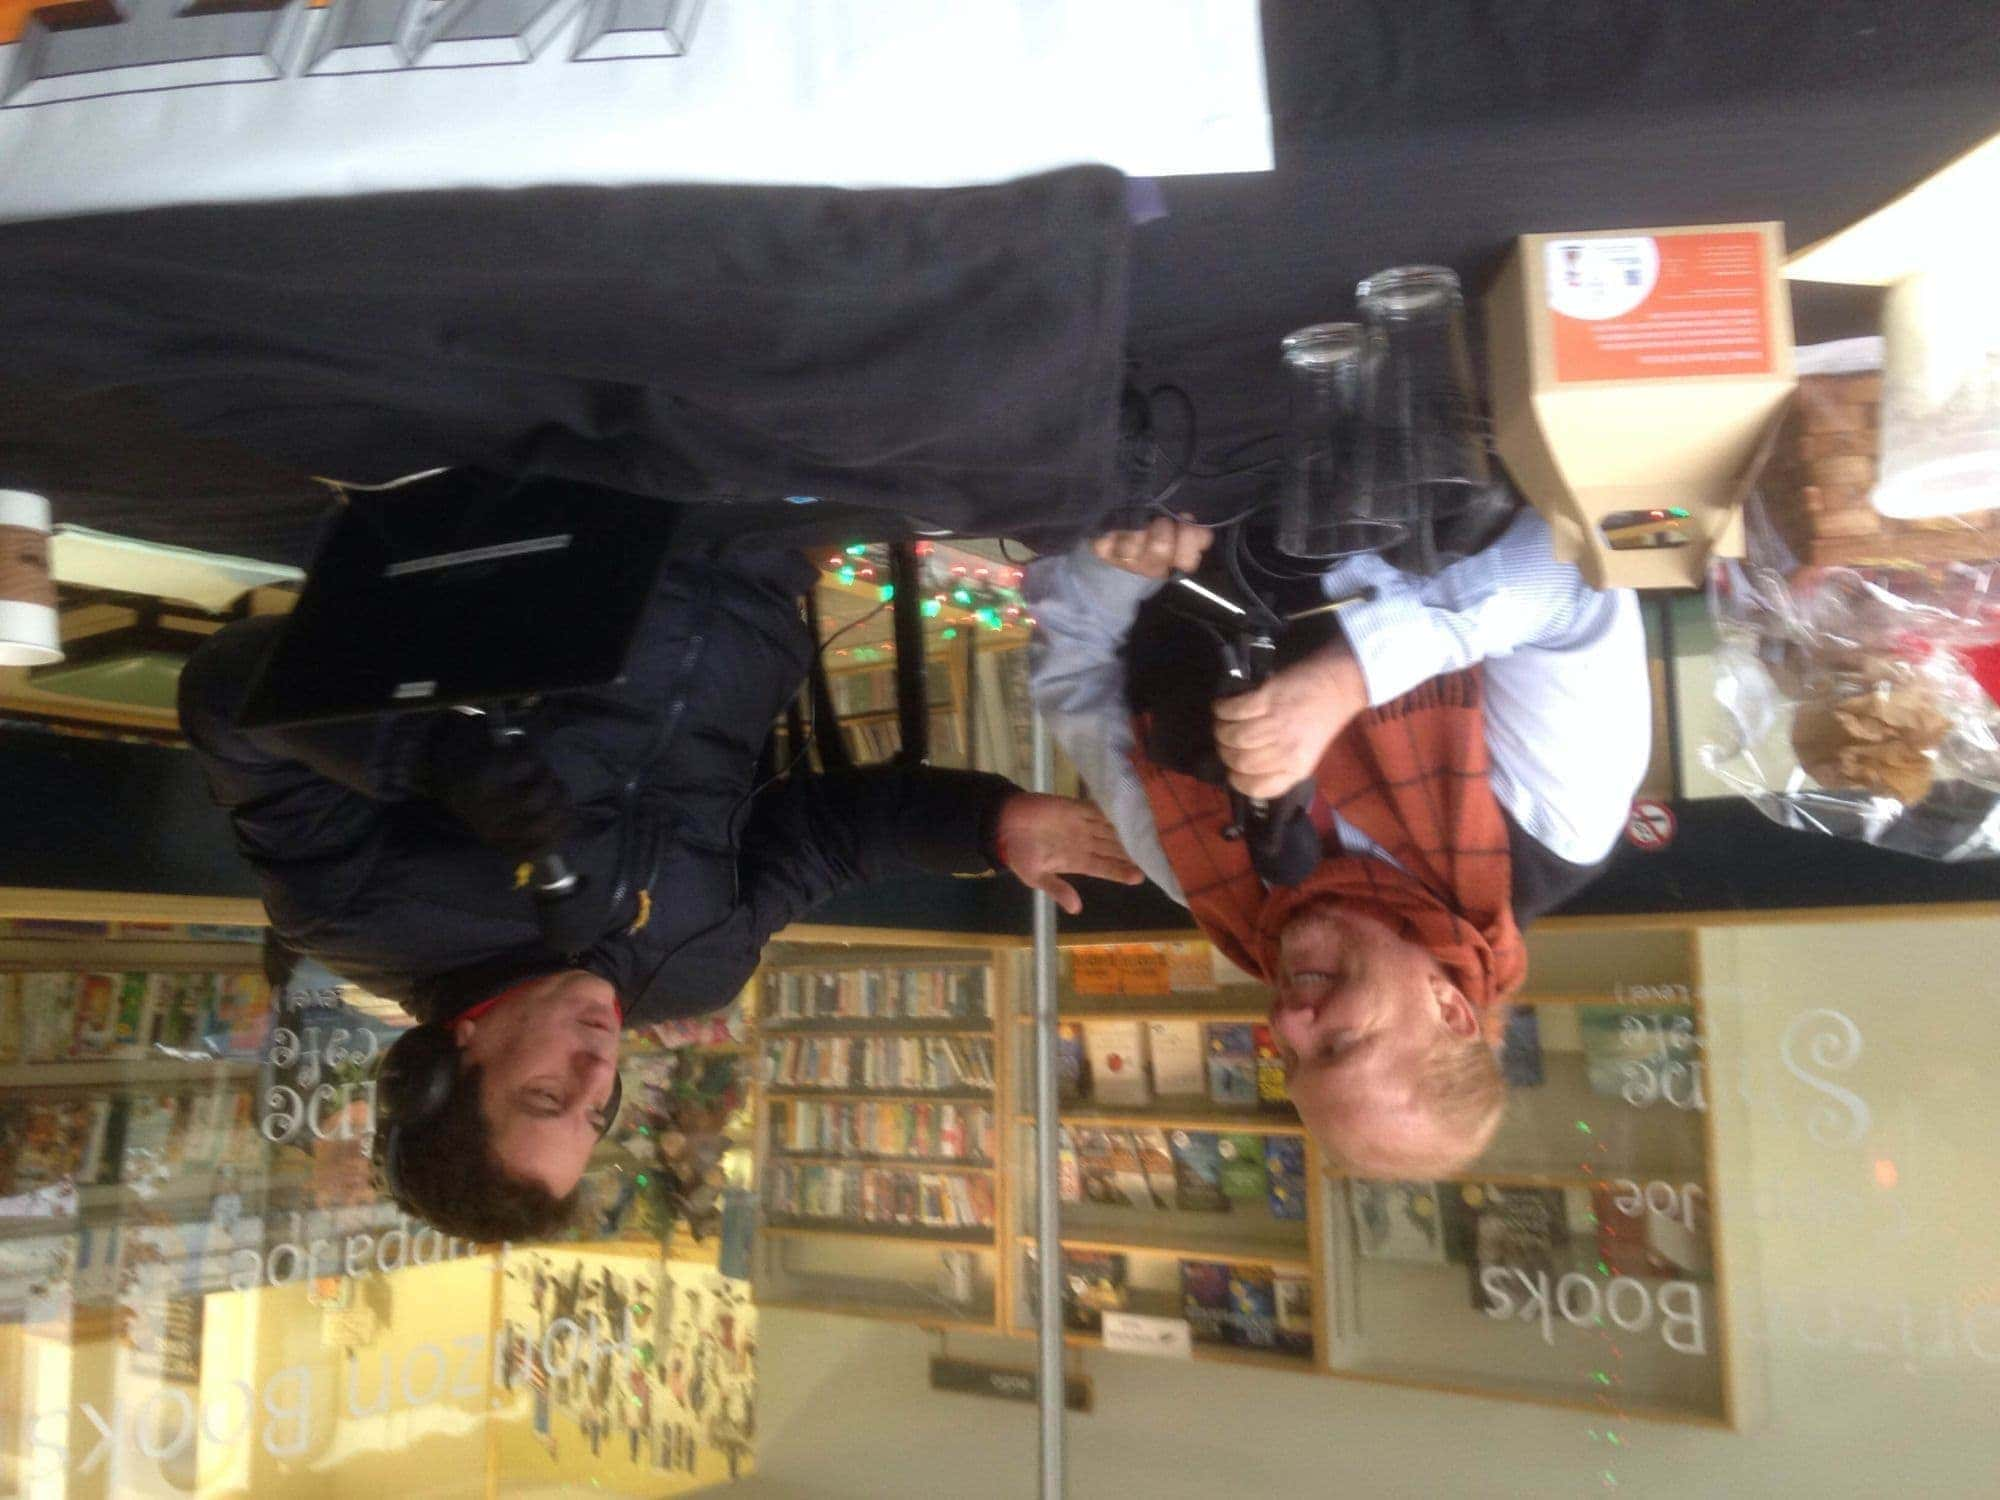 Mario Batali with Omelette at Horizon Books, Traverse City